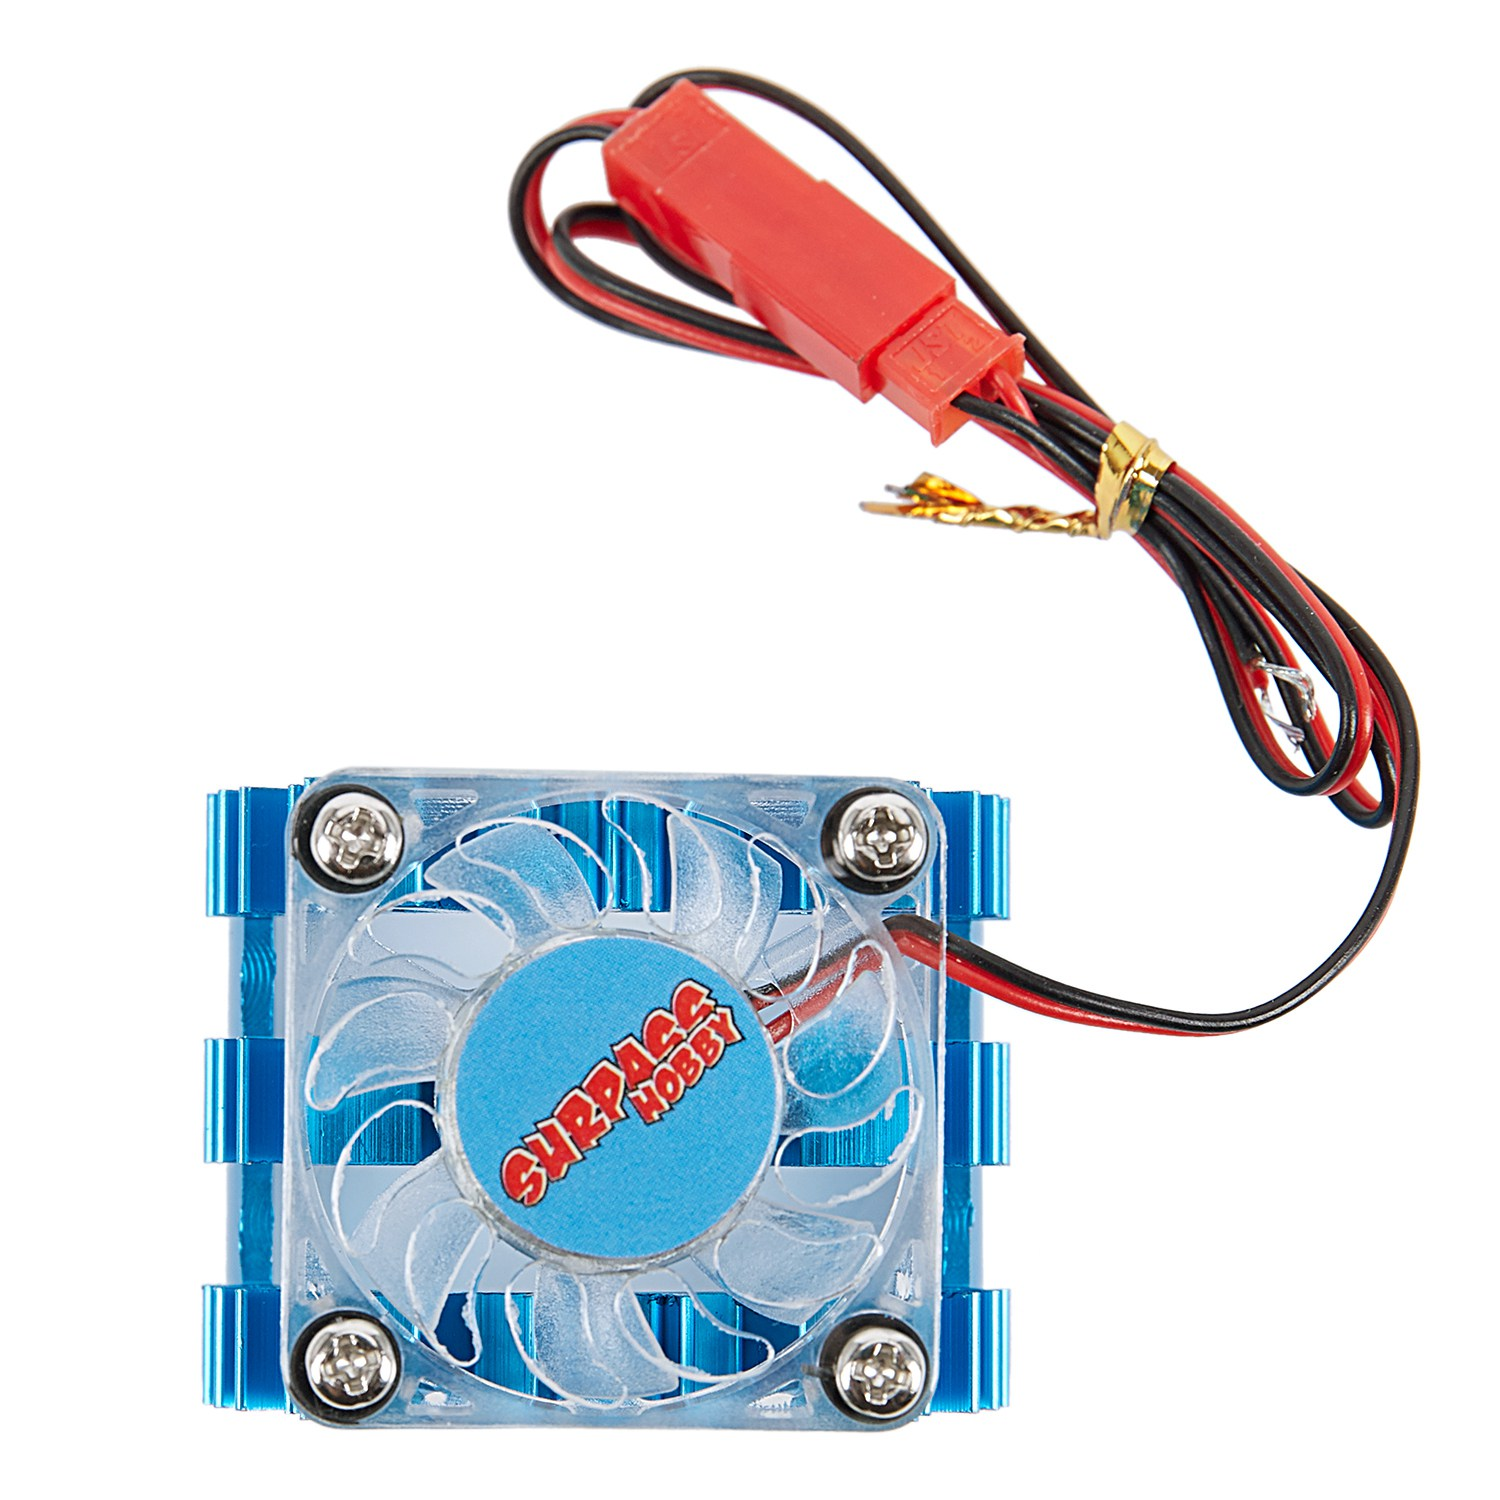 SURPASS HOBBY RC 36mm 540 Motor Heat Sink Heatsink With Cooling Fan For 1/10 1/8 RC Car Remote Control Car Accessory